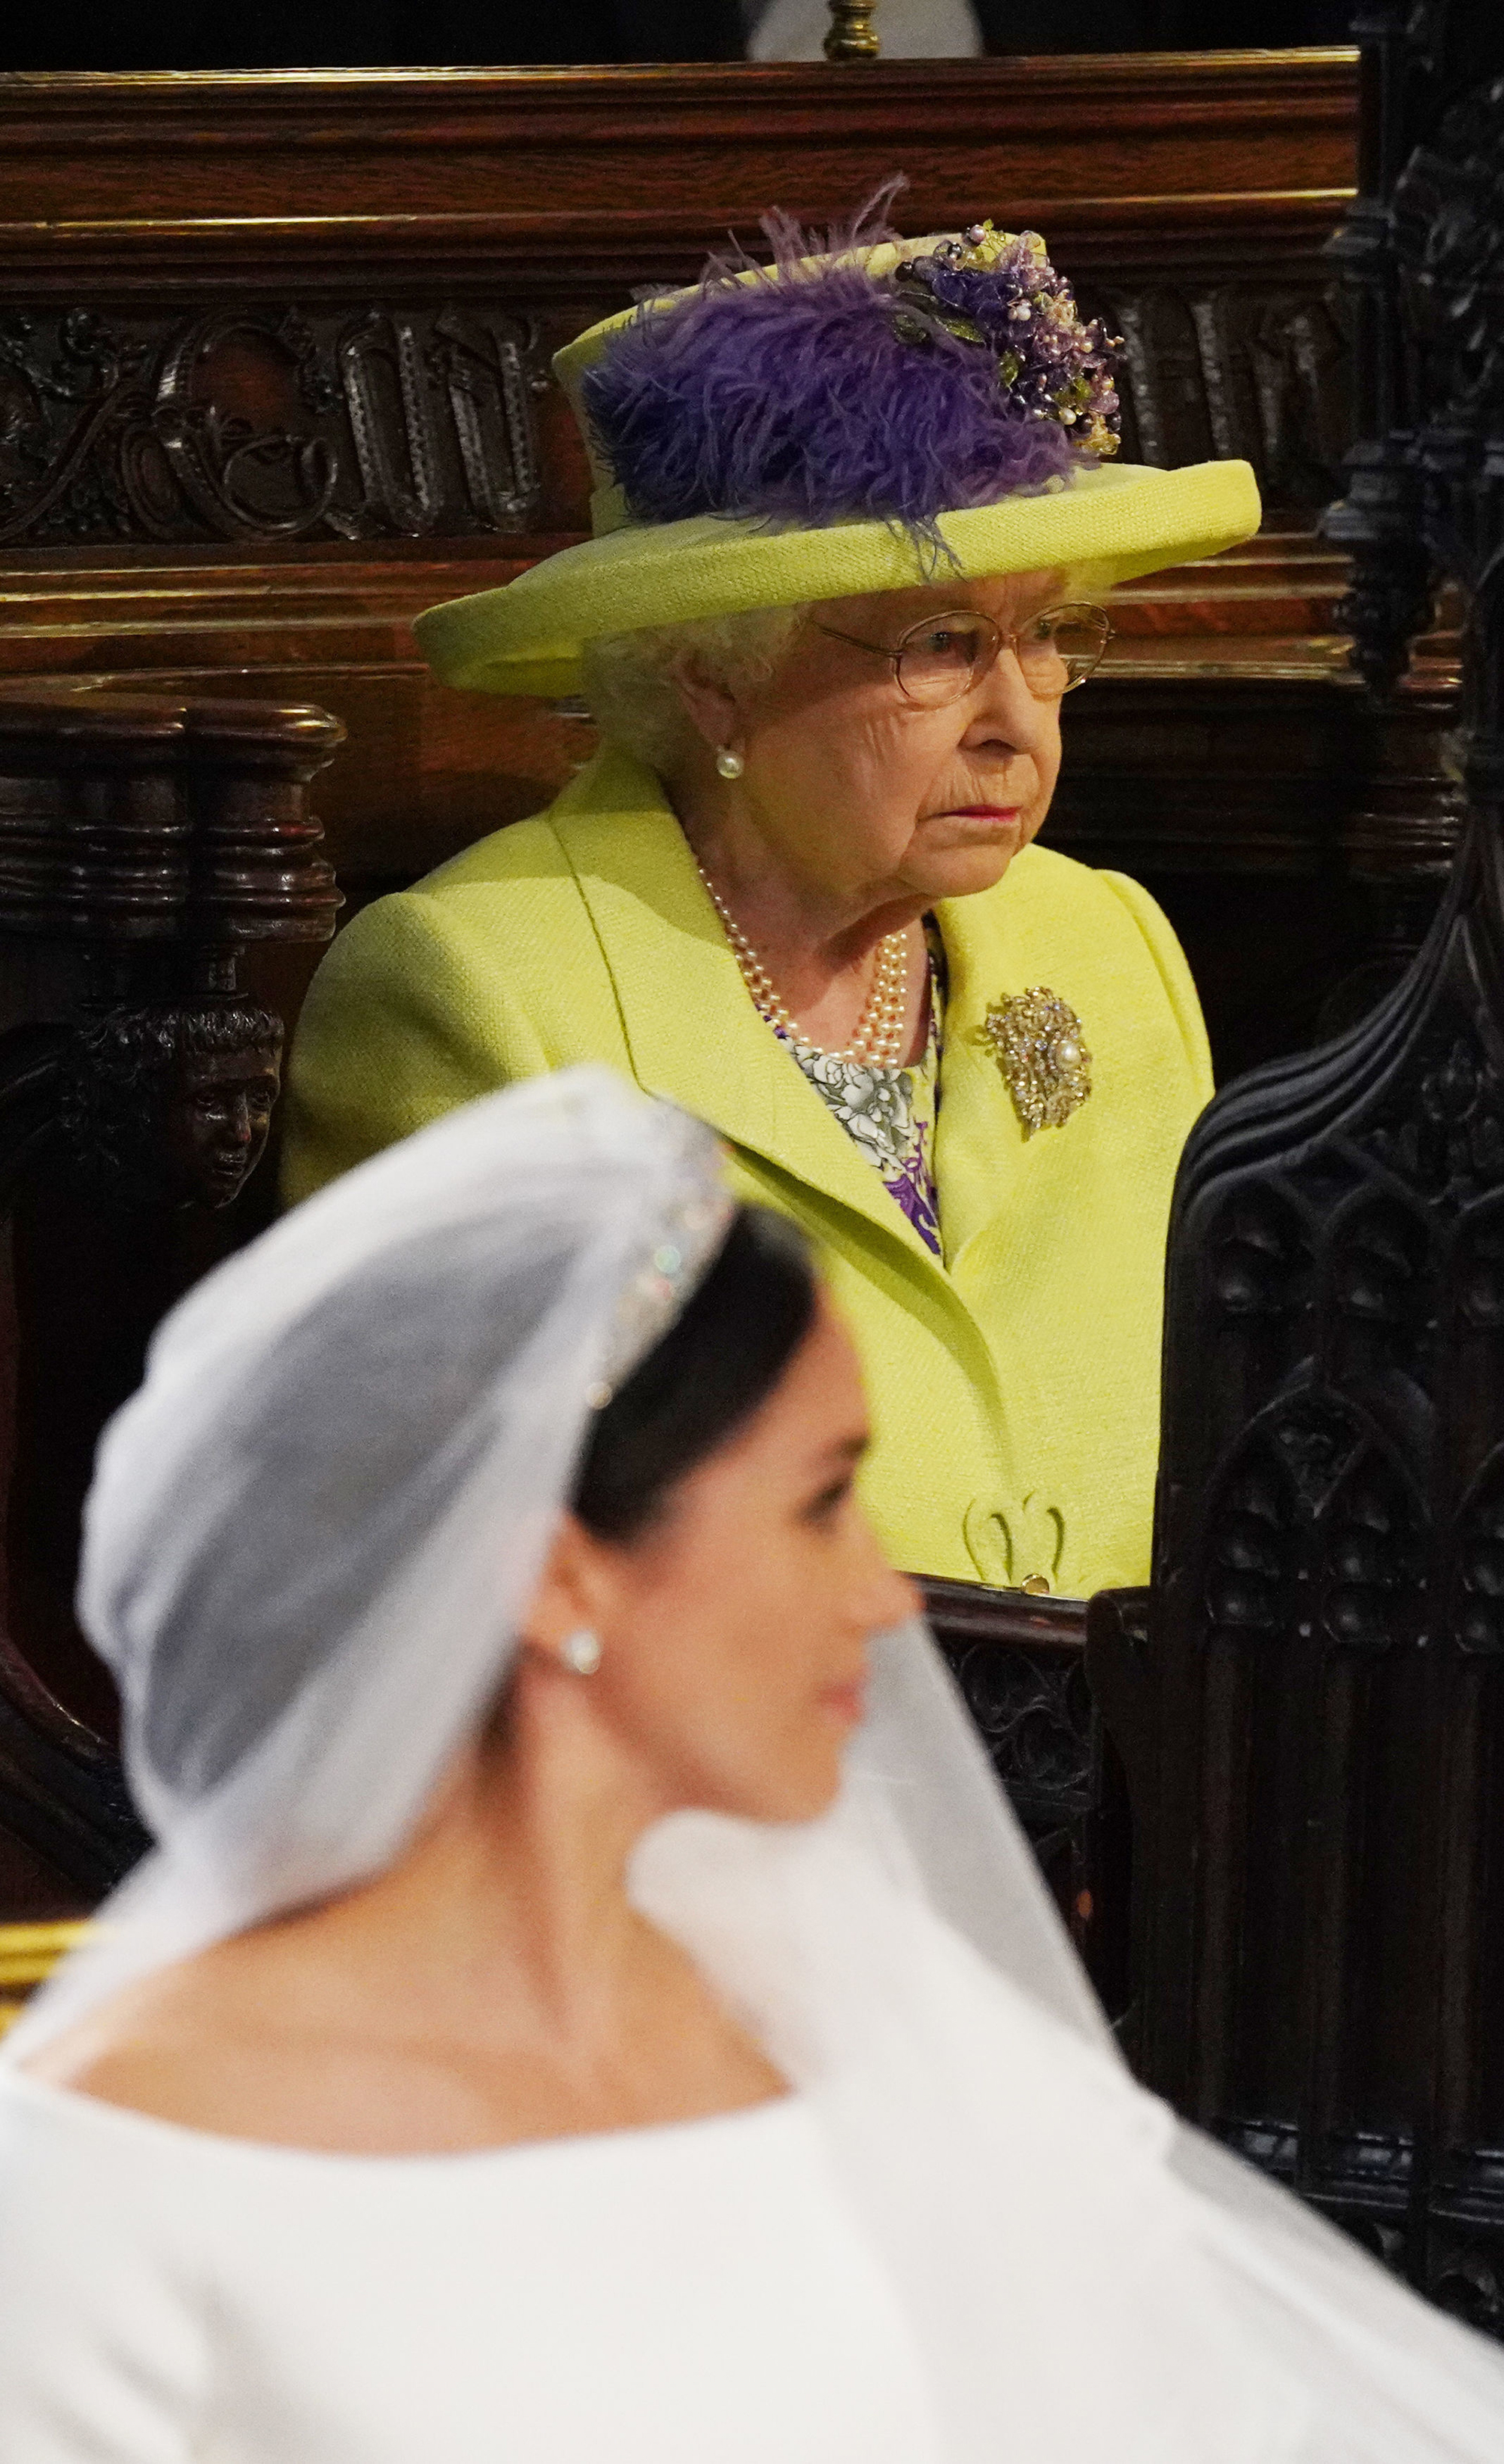 Queen Elizabeth removed the photo of Megan Markle from the place of honor where it stood for only a week 68